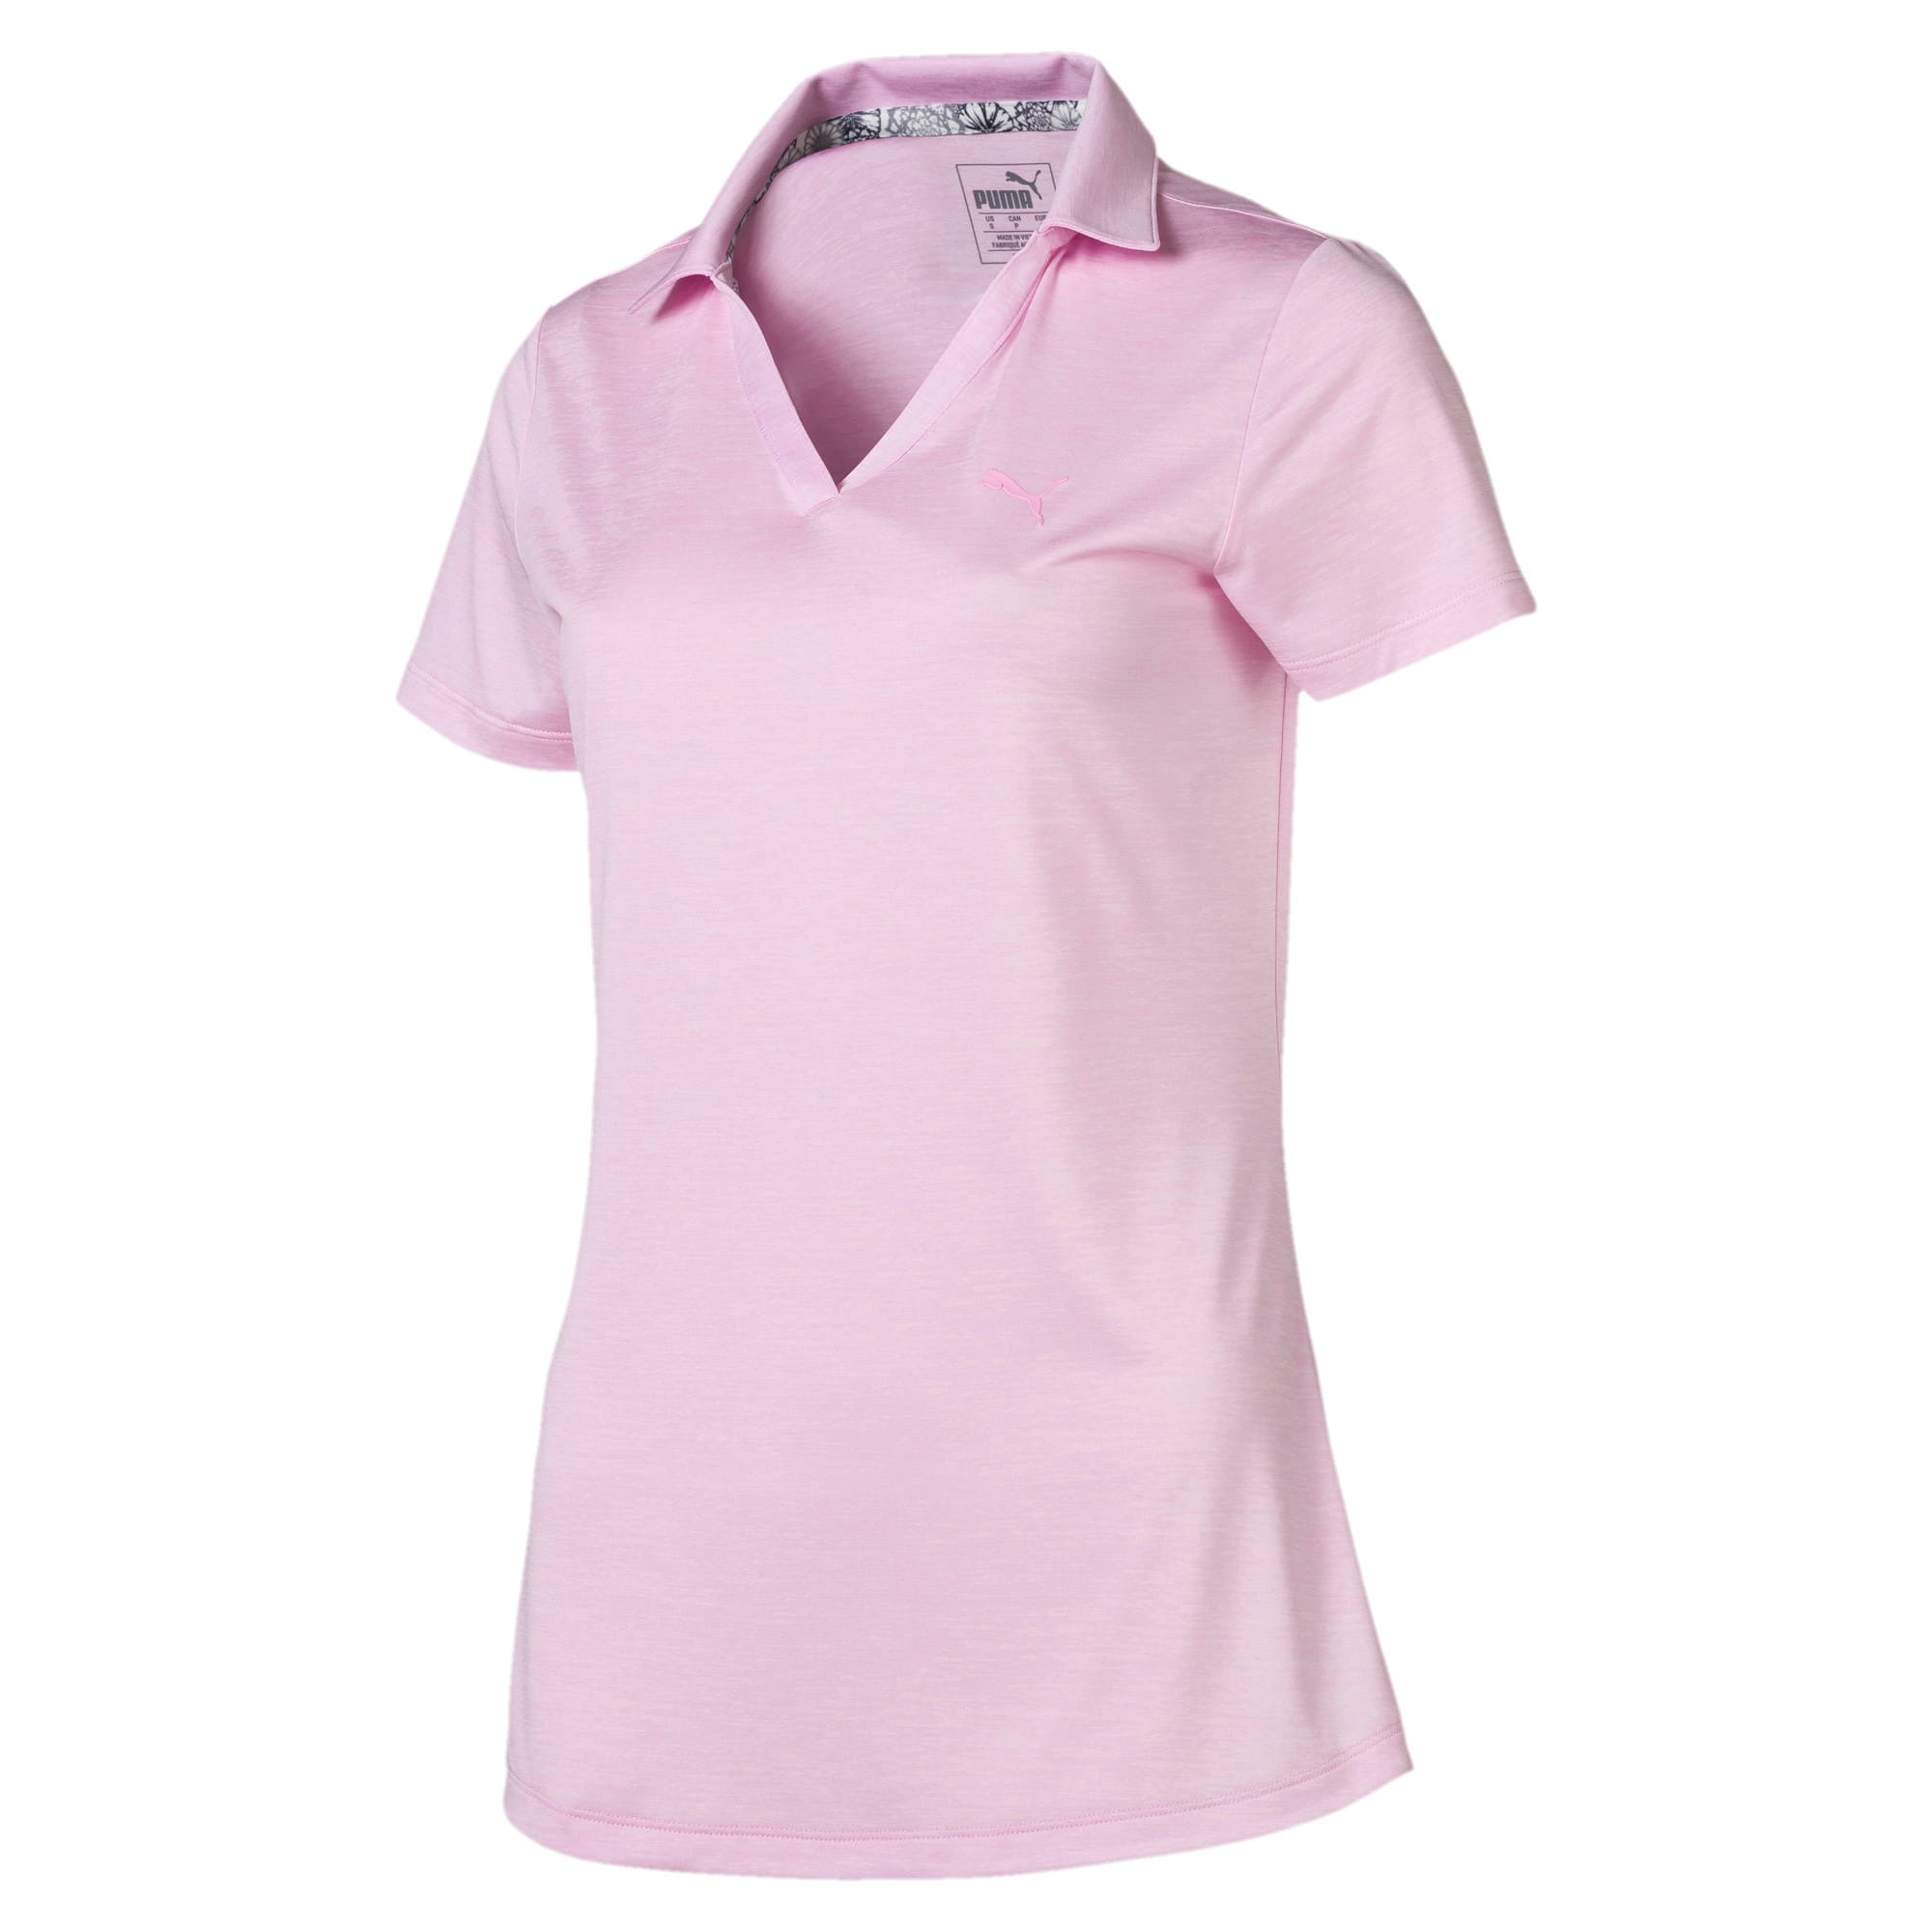 Thumbnail 4 of Super Soft Women's Golf Polo, Pale Pink Heather, medium